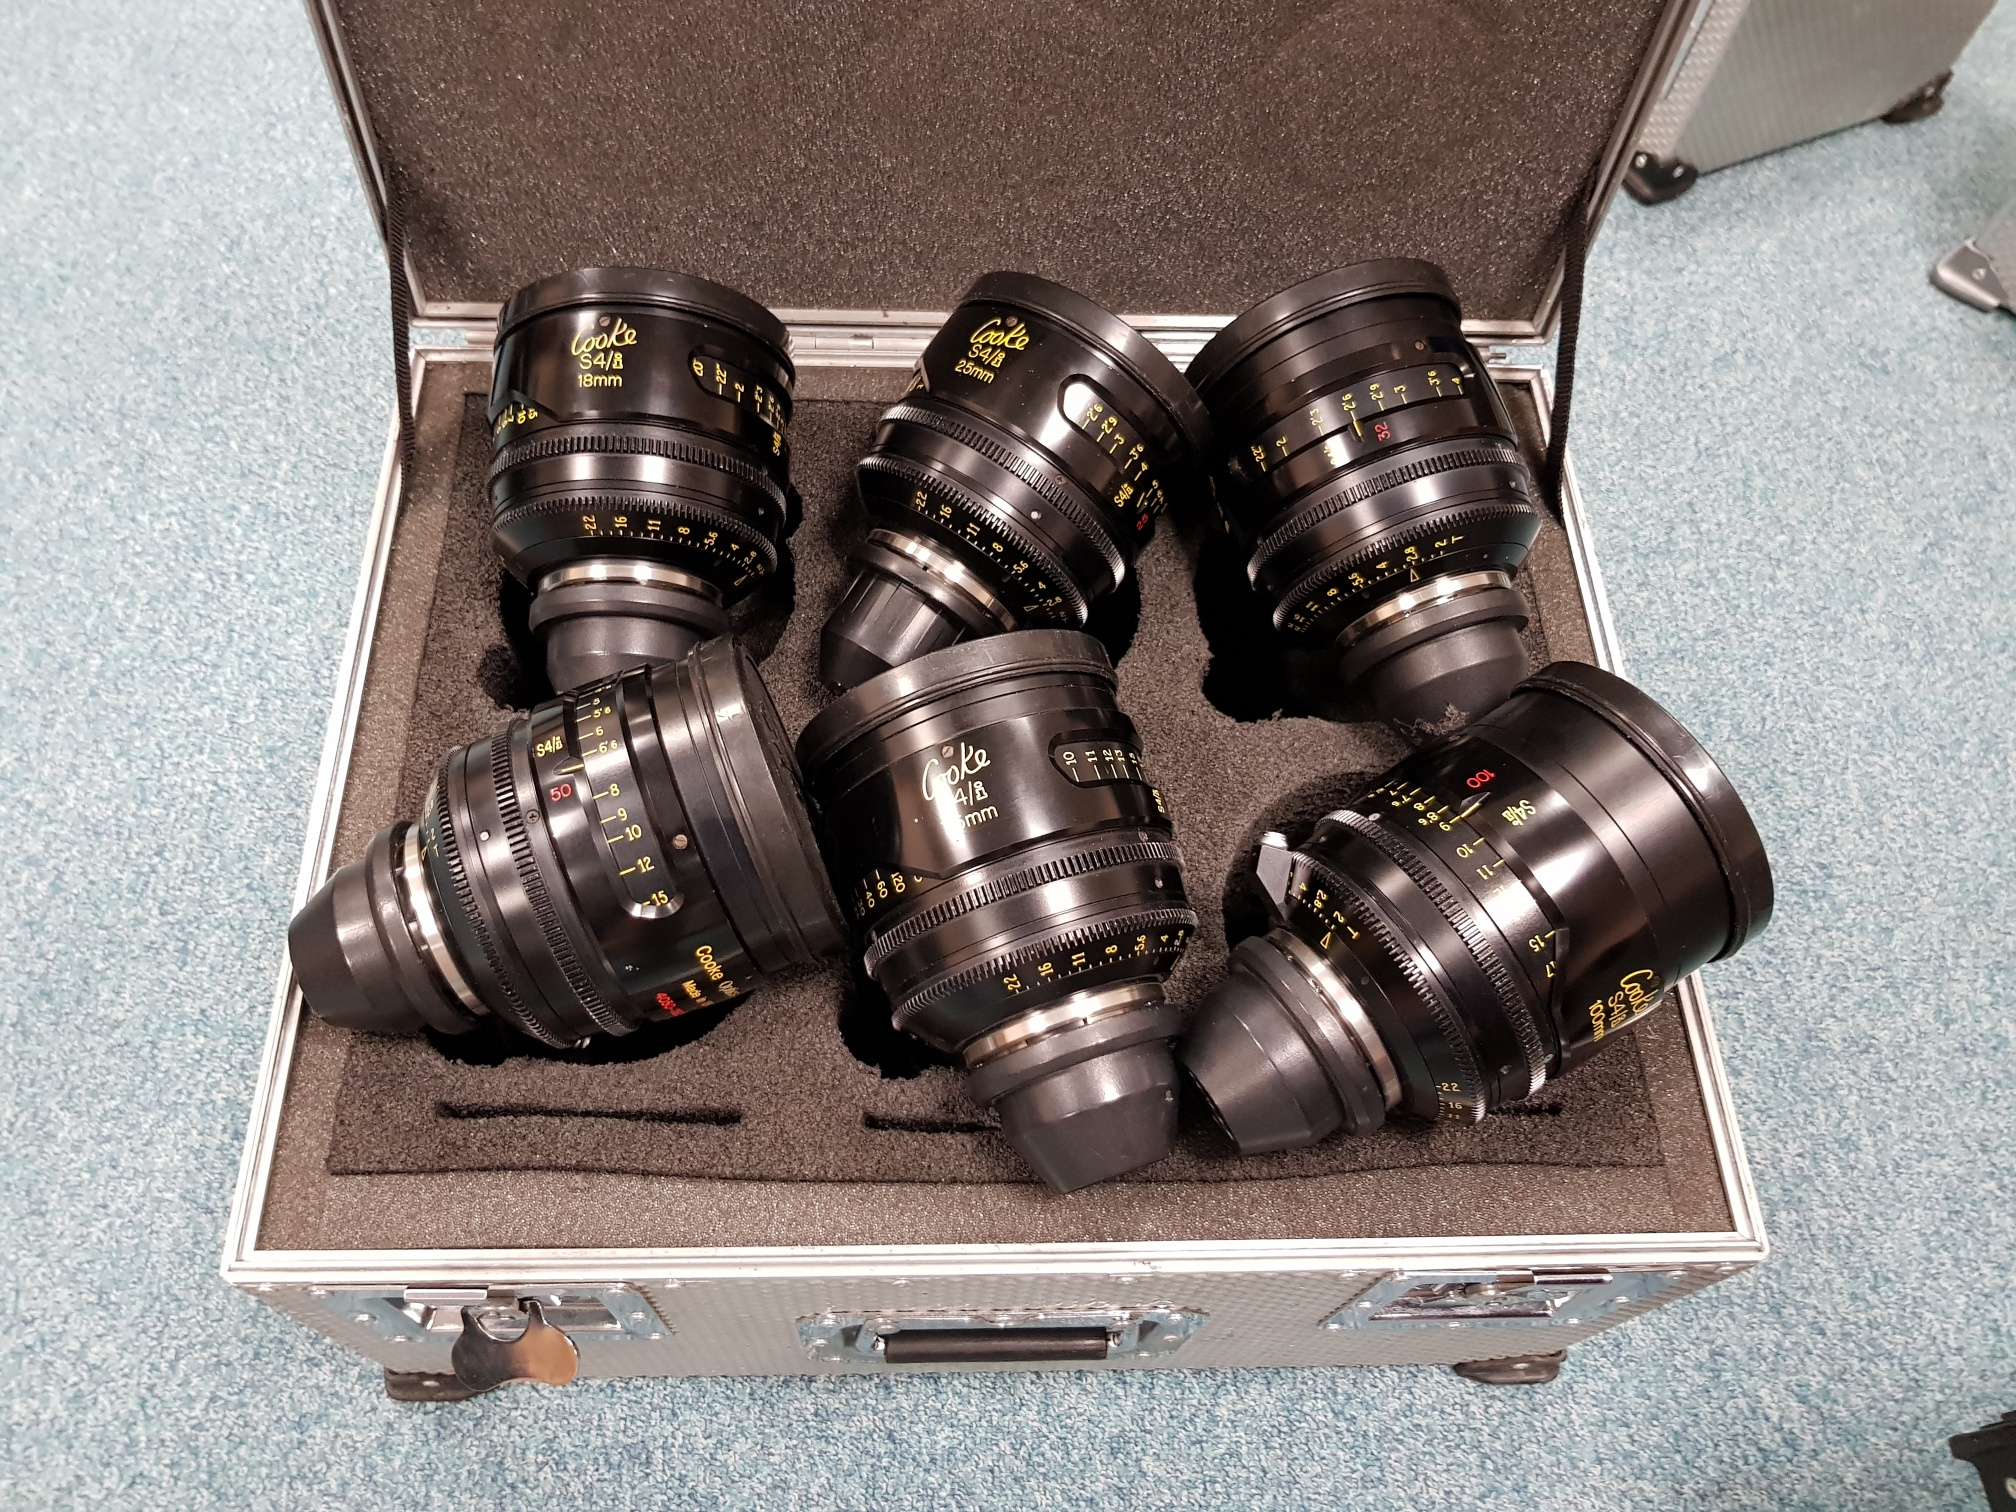 Cooke S4i set of 6 Lenses - Image #1